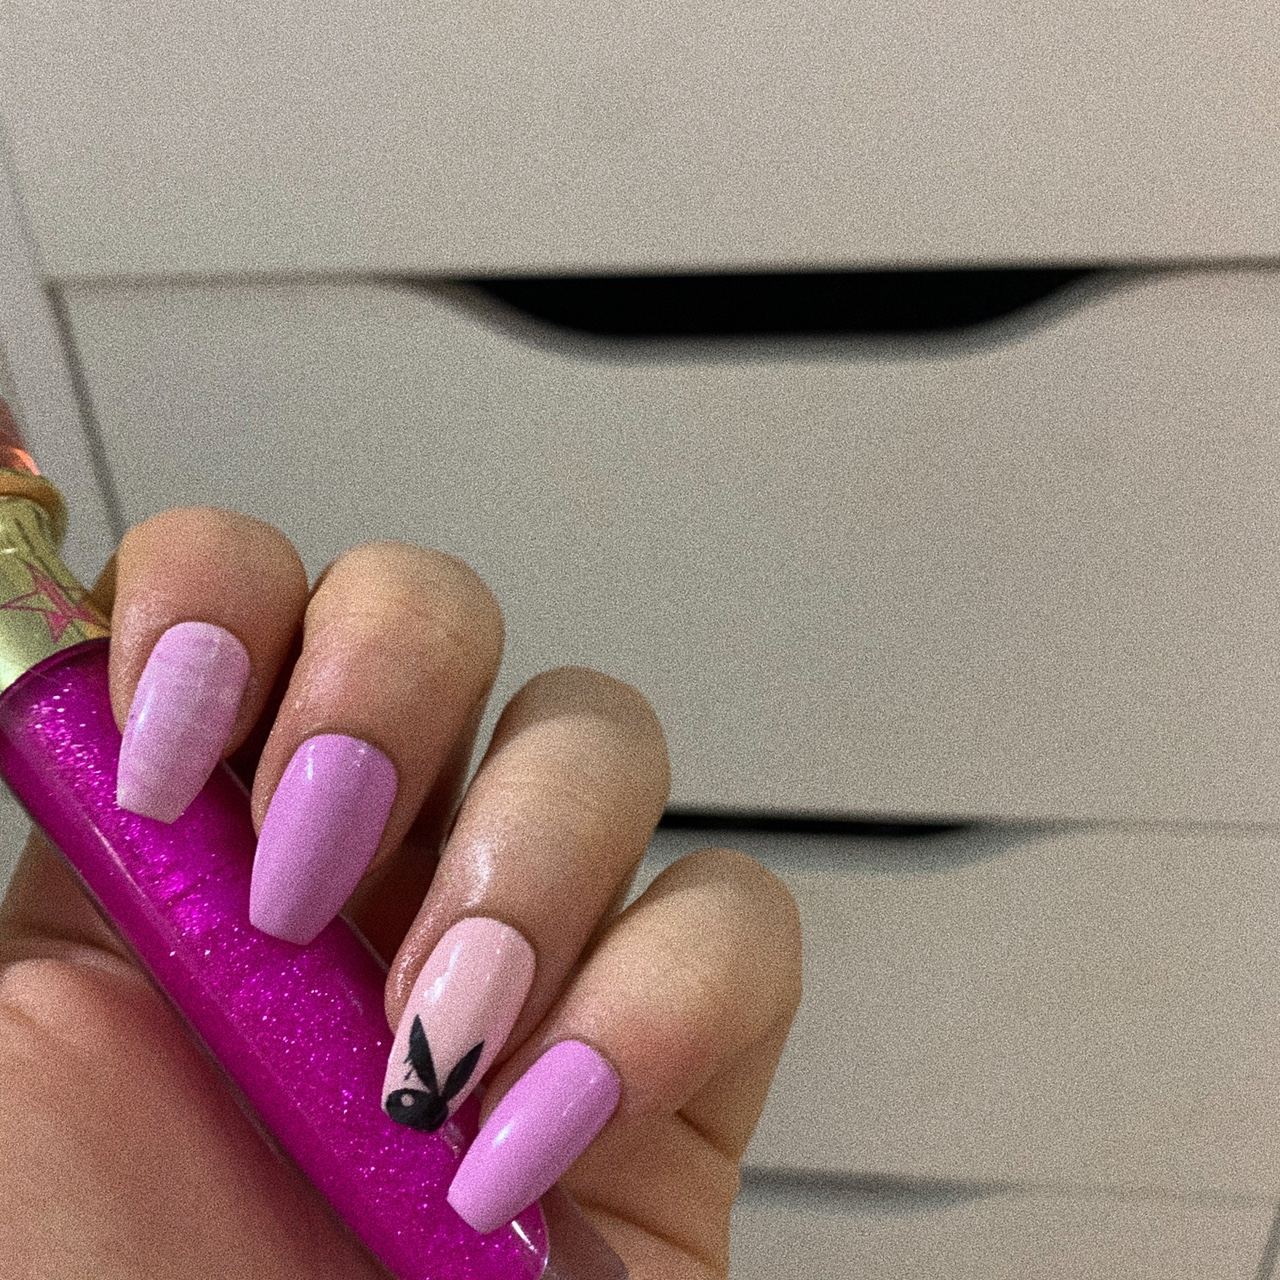 Playboy Stick On Nails 10 Nails In This Design Depop